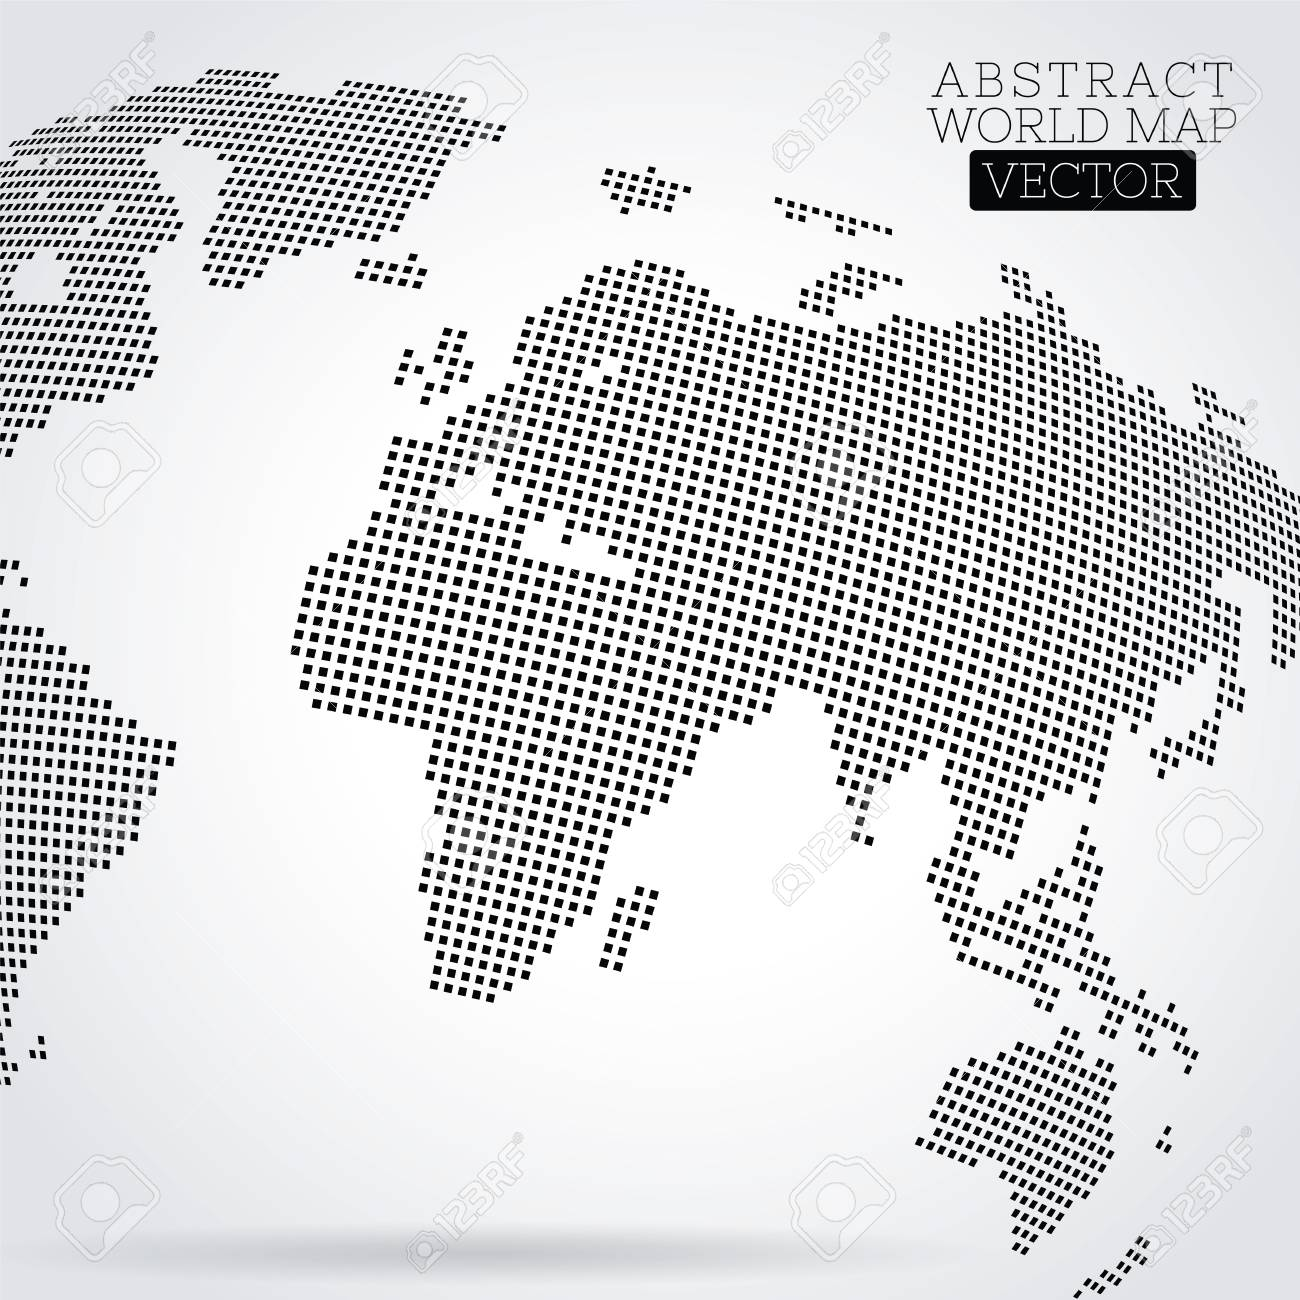 Pixel world map made from small squares royalty free cliparts pixel world map made from small squares stock vector 91822206 gumiabroncs Image collections